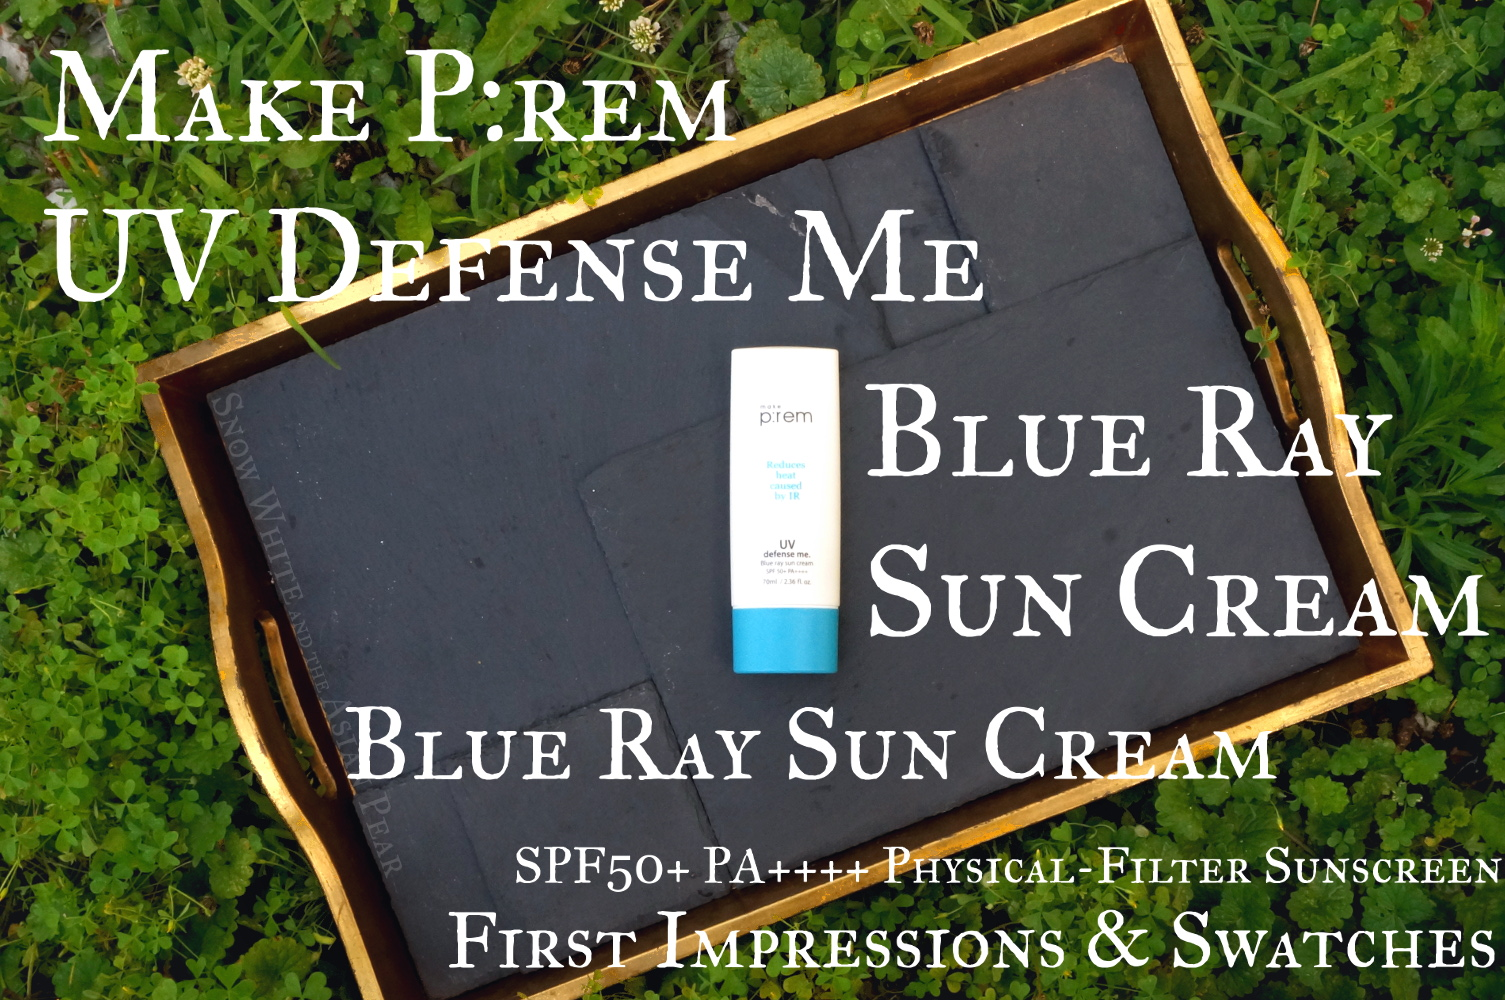 First Impressions & Swatches: Make P:rem Blue Ray Sunscreen